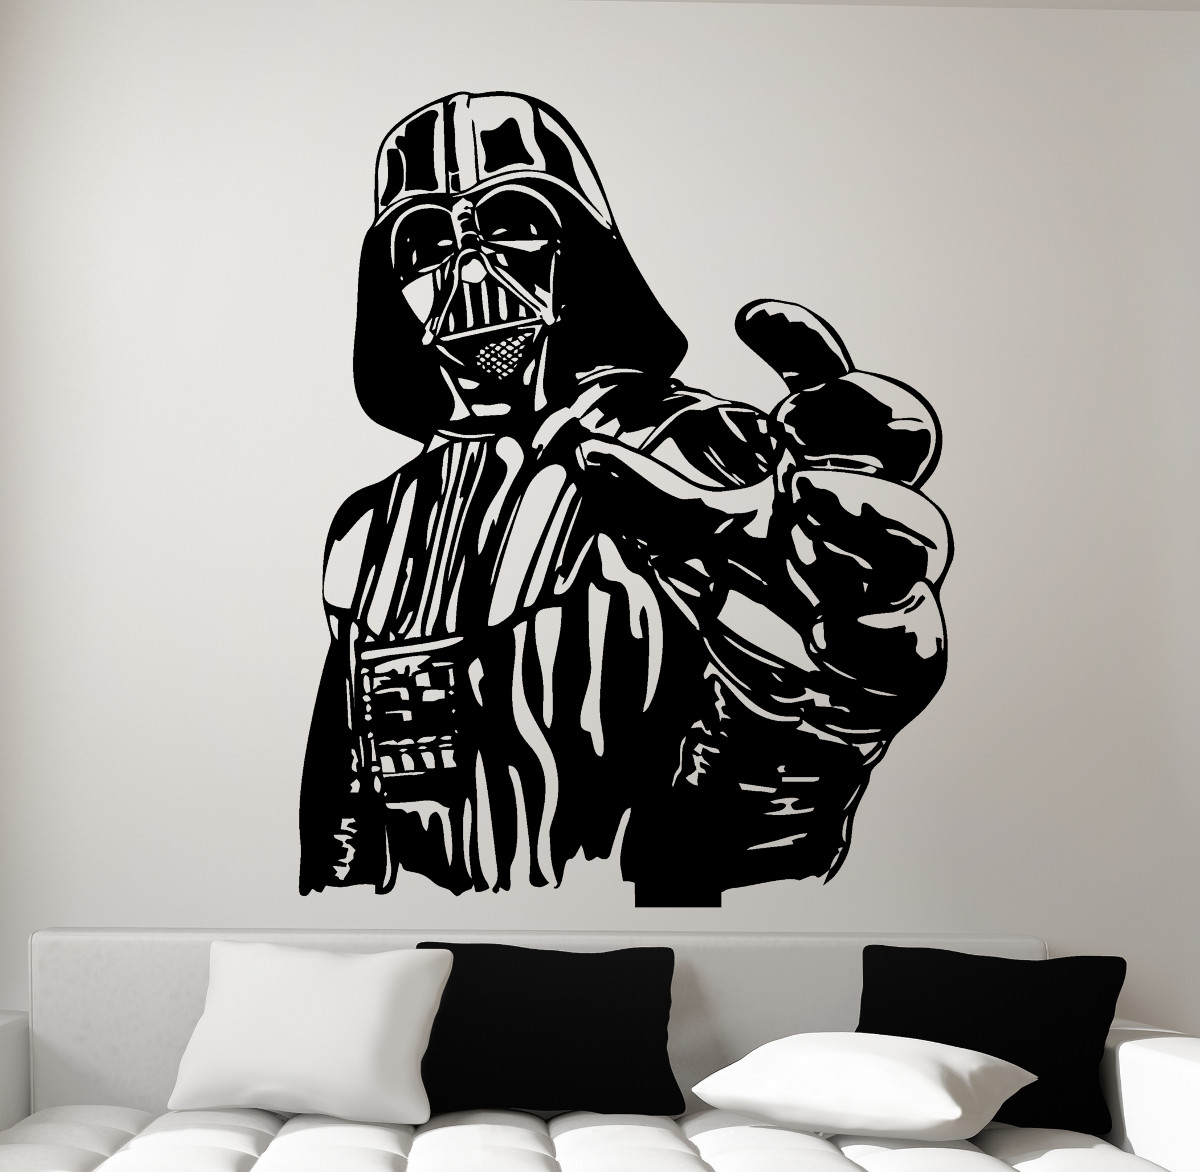 Vinilos Decorativos Star Wars Wall Decal Darth Vader Star Wars